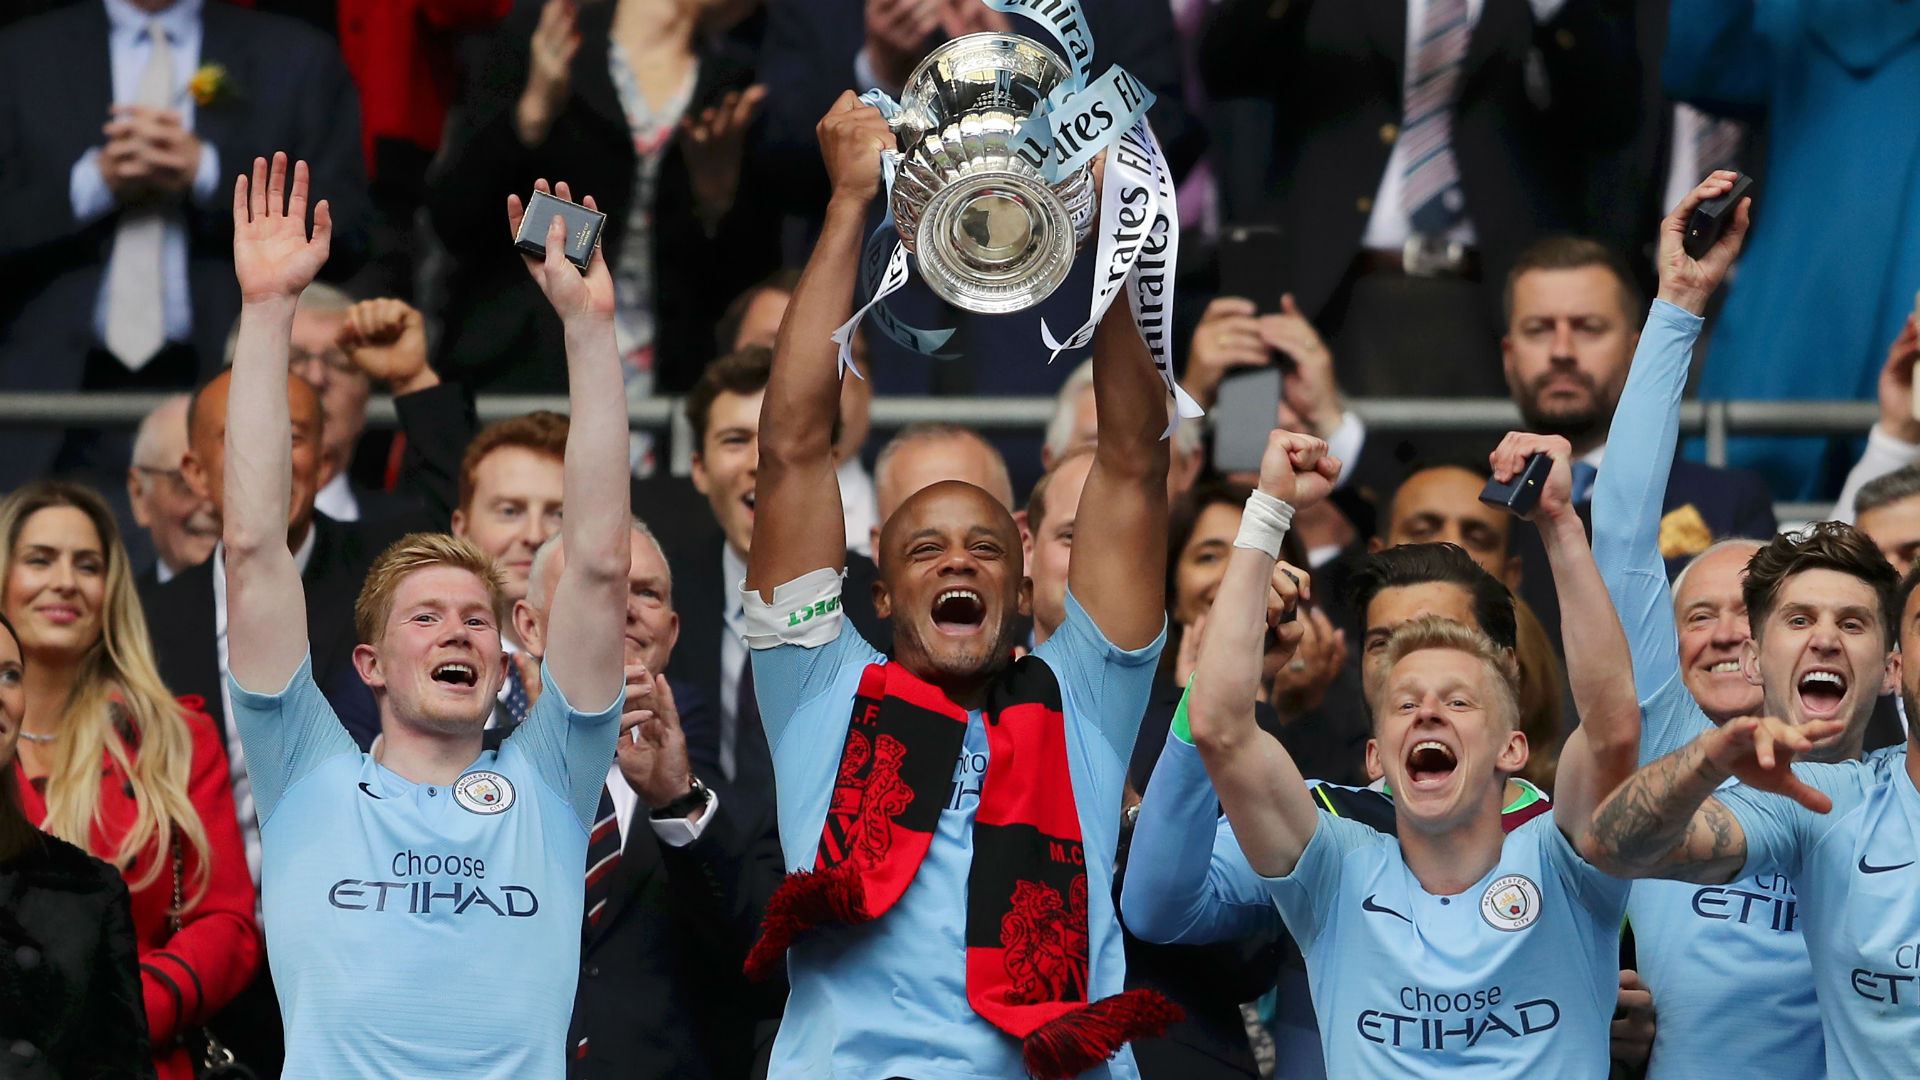 I love you, I'm out - Departing Kompany has his mic-drop moment in City's trophy parade